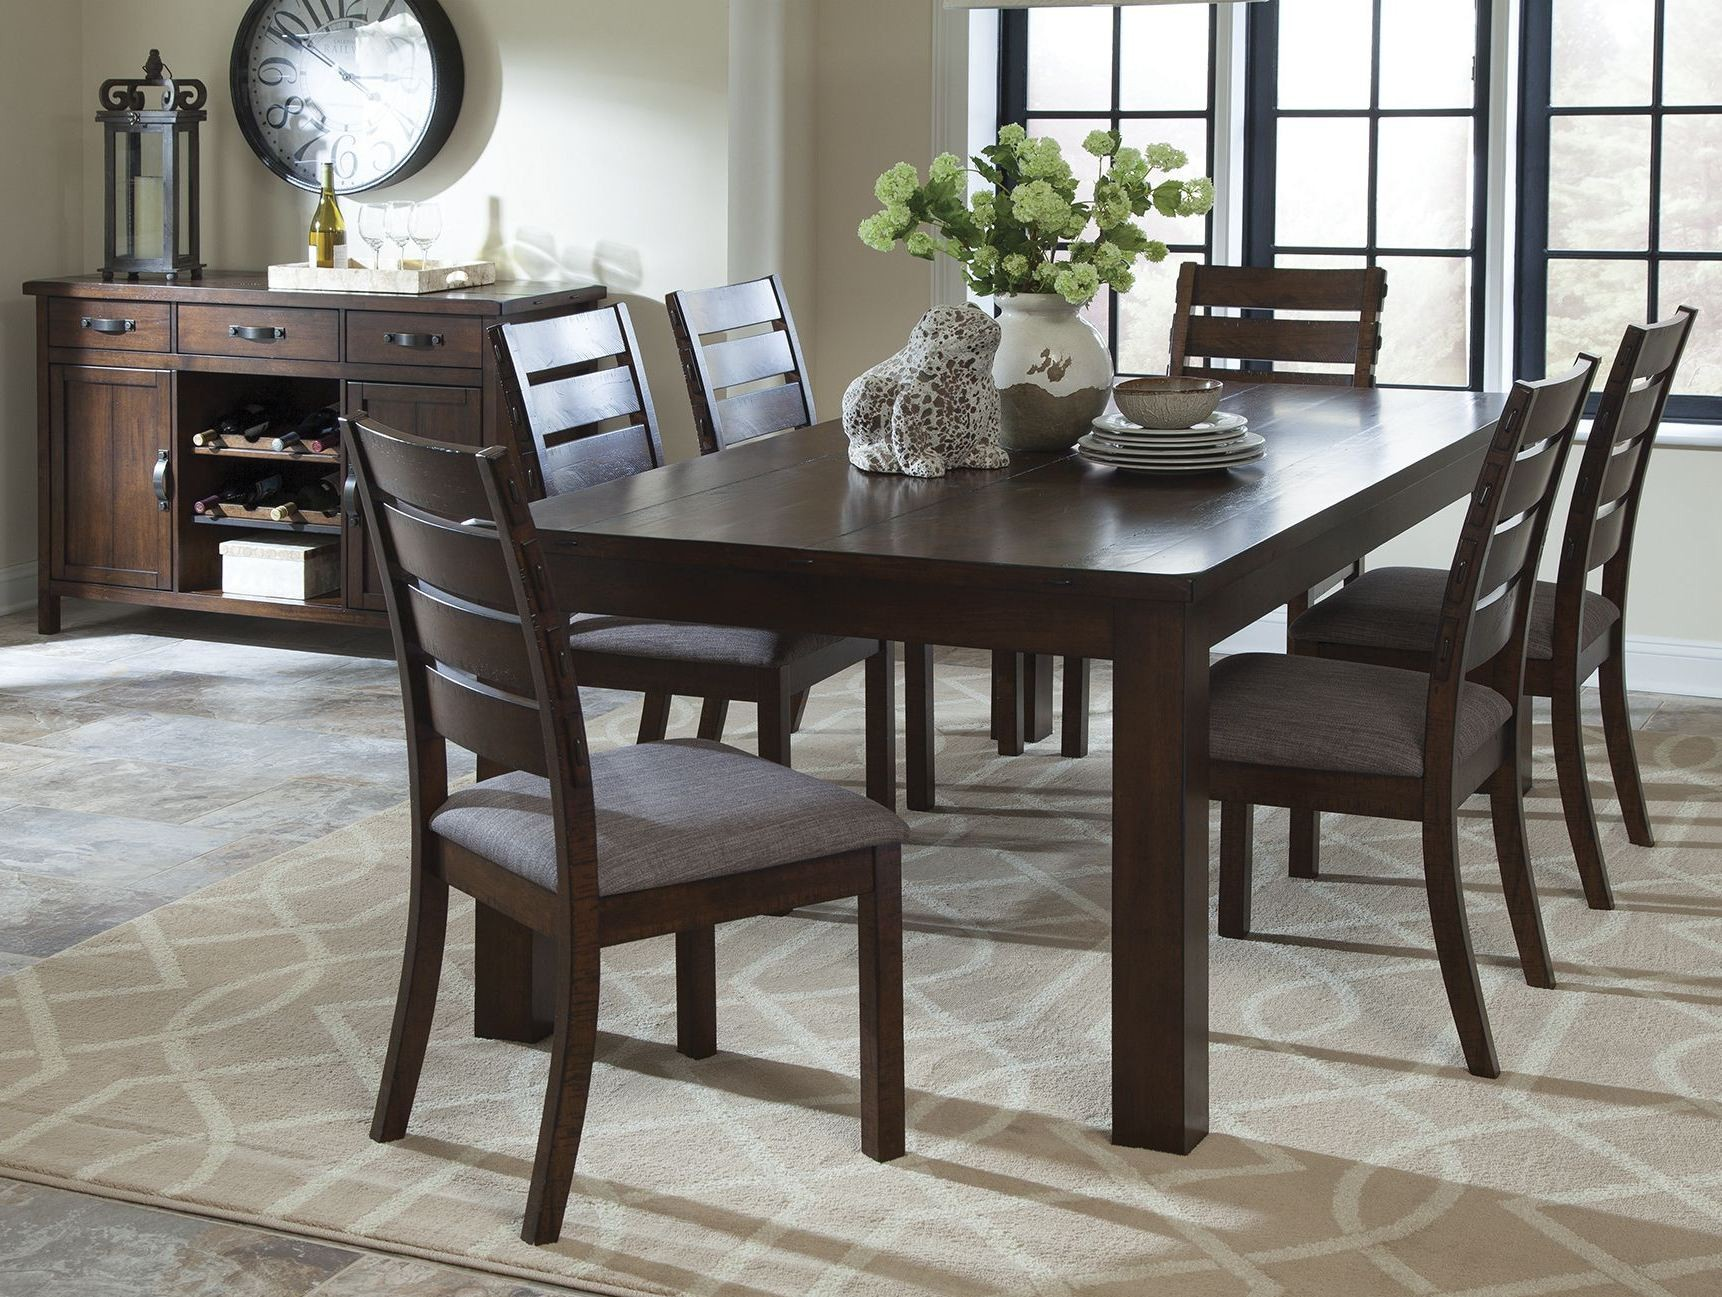 Wiltshire Rustic Pecan Dining Room Set 106361 Coaster Furniture